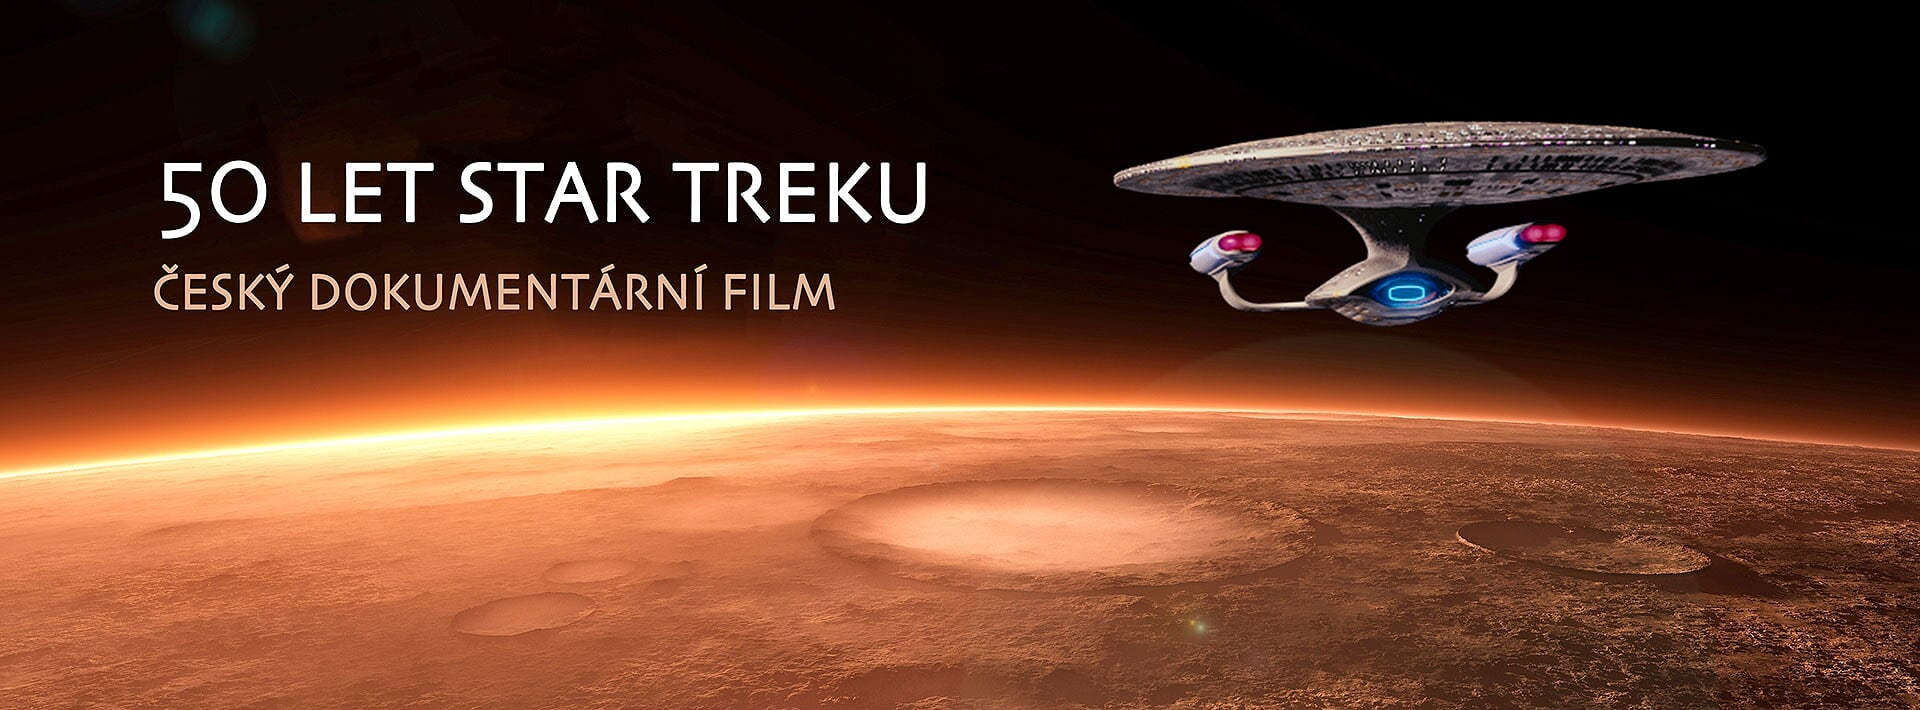 Star Trek 50 (dokumentární film)